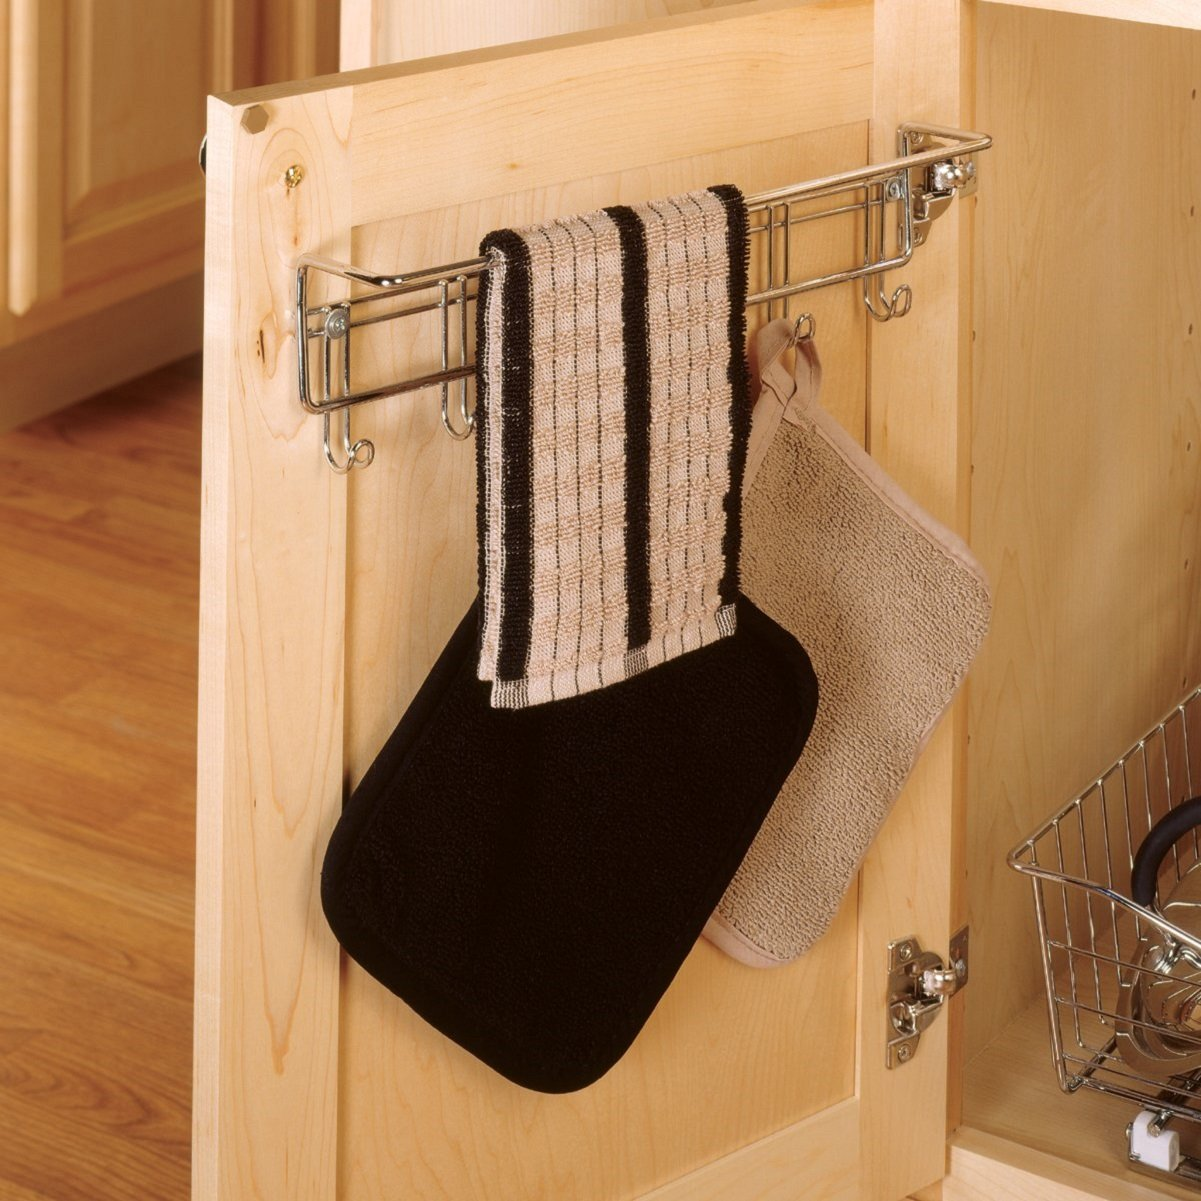 Uncategorized Dish Towel Rack amazon com closetmaid 3064 6 hook towel rack chrome home kitchen